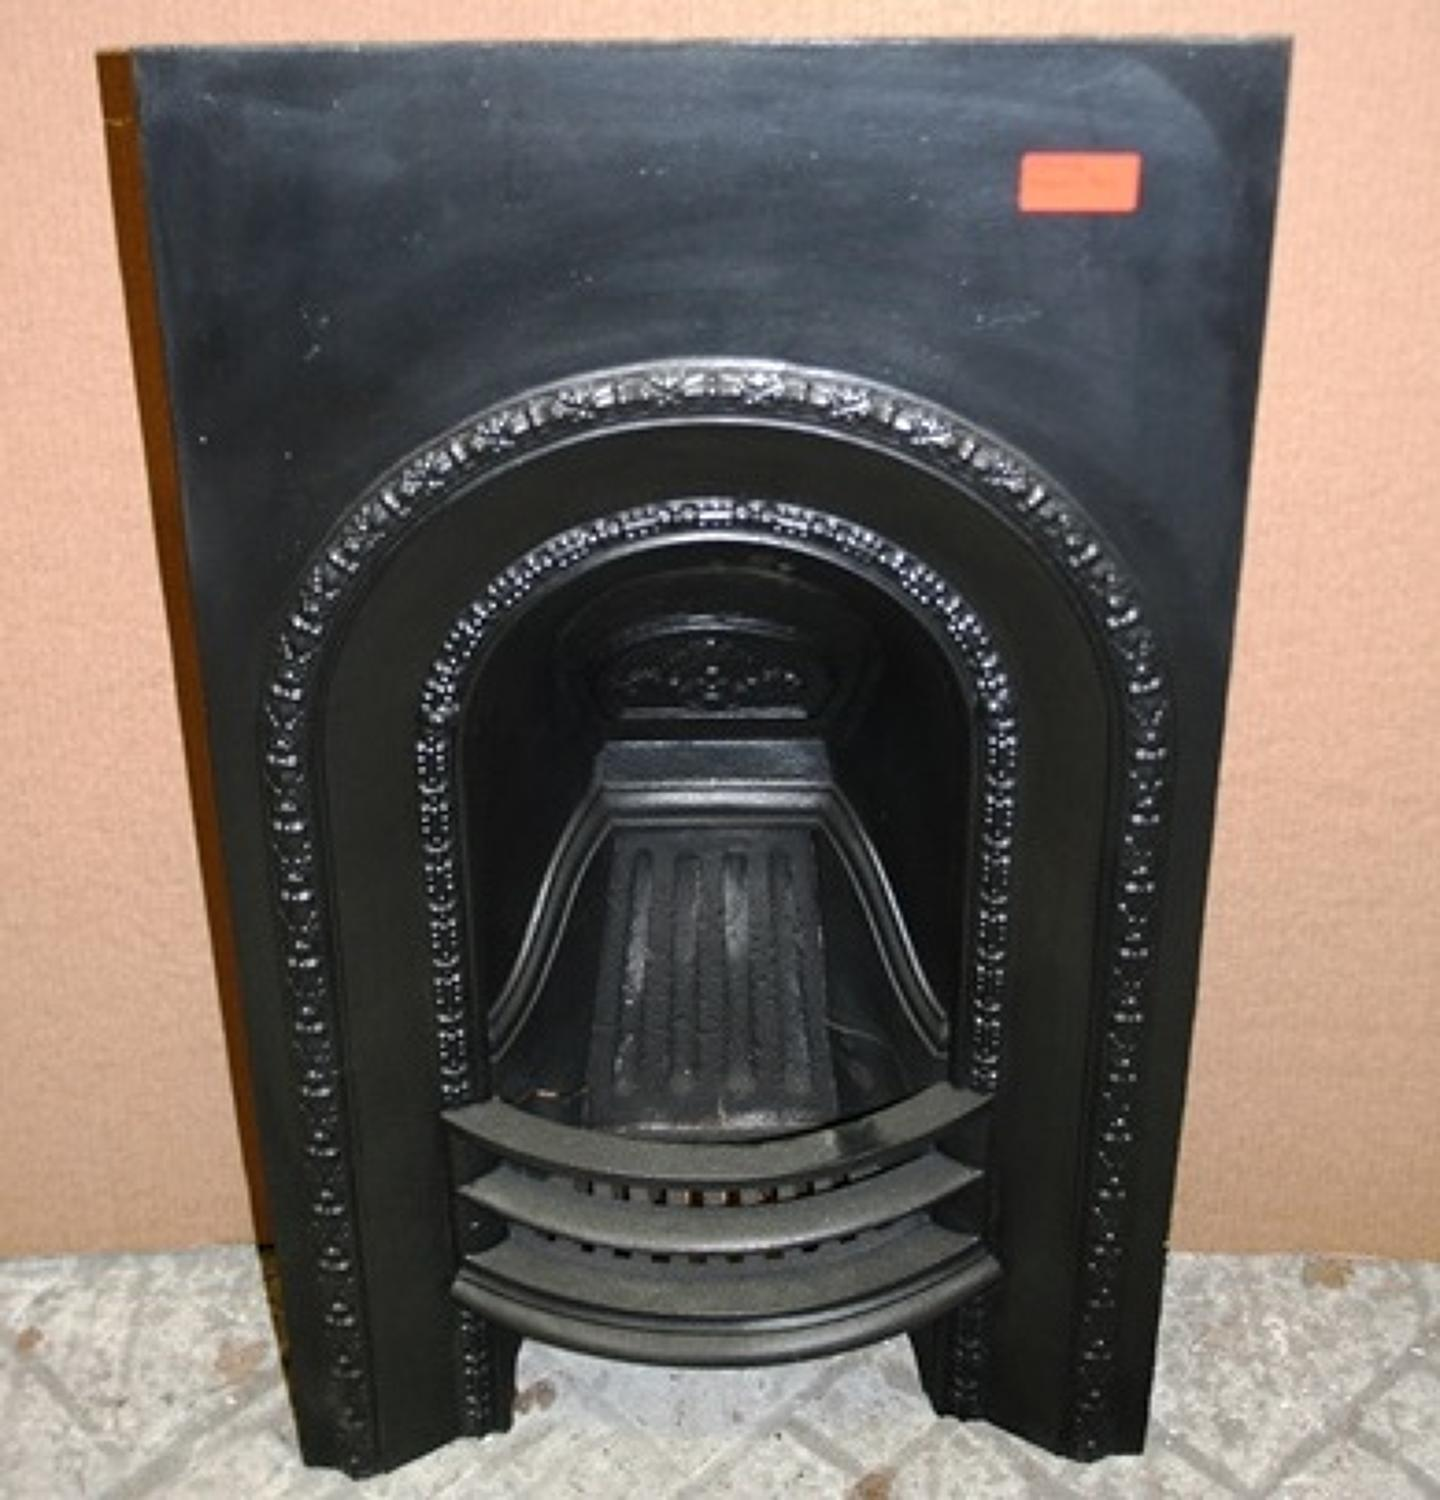 FI0006 A Small Cast Iron Fire Insert for Decorative Use